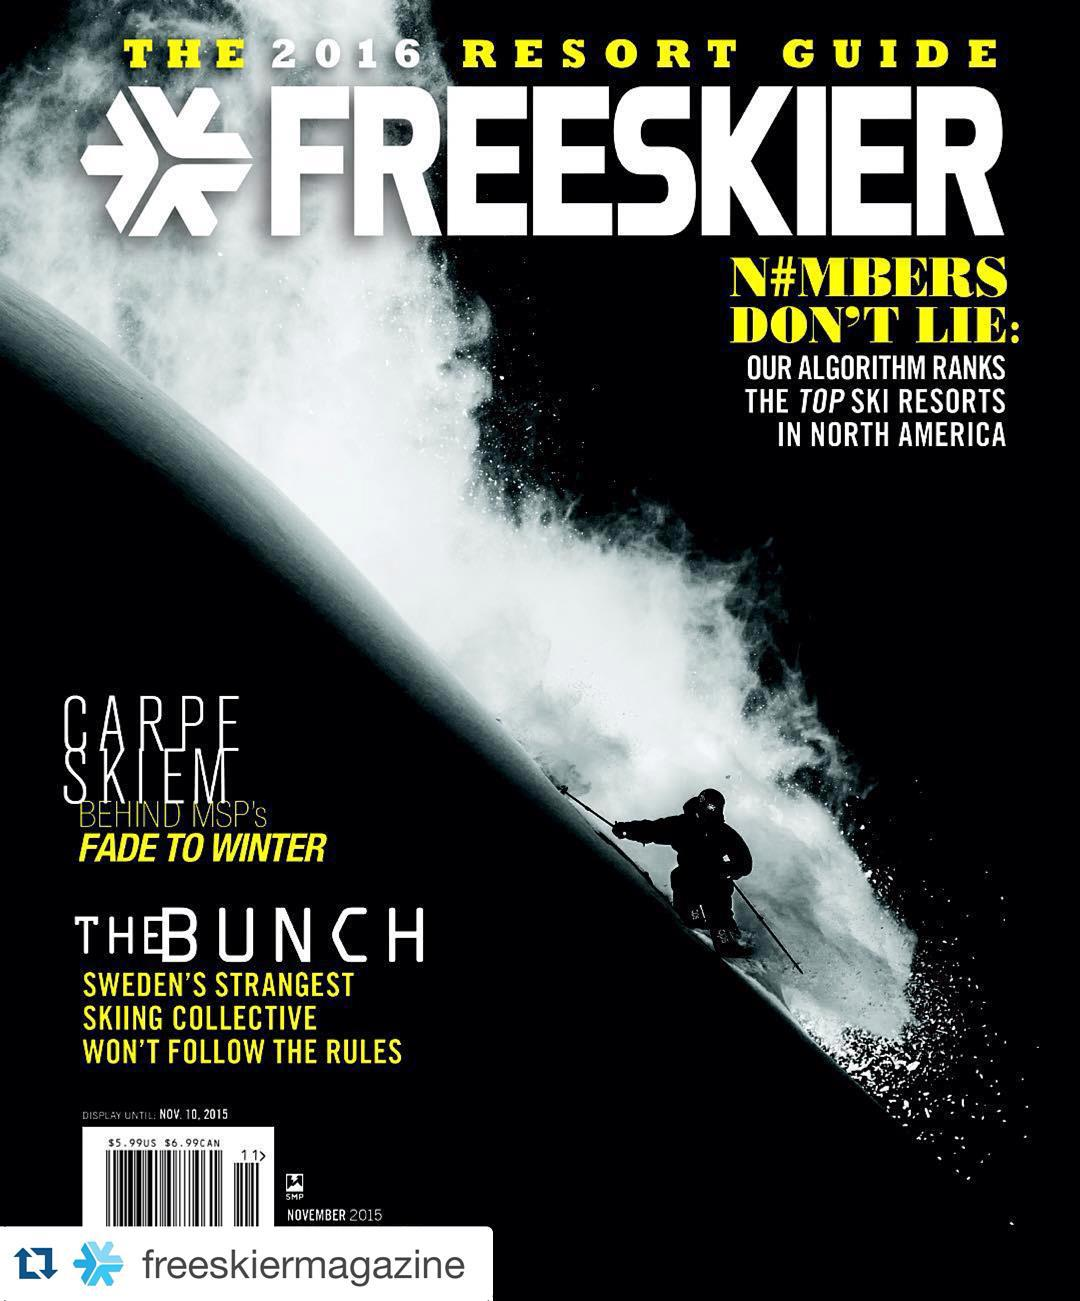 Congratulations to DPS Koala Pro-Team rider @pierssolomon and Photographer @oskar_enander for landing the cover of @freeskiermagazine! #Regram ・・・ Here's a look at the 2016 Resort Guide cover, starring @PiersSolomon​. Photographer @Oskar_Enander says...